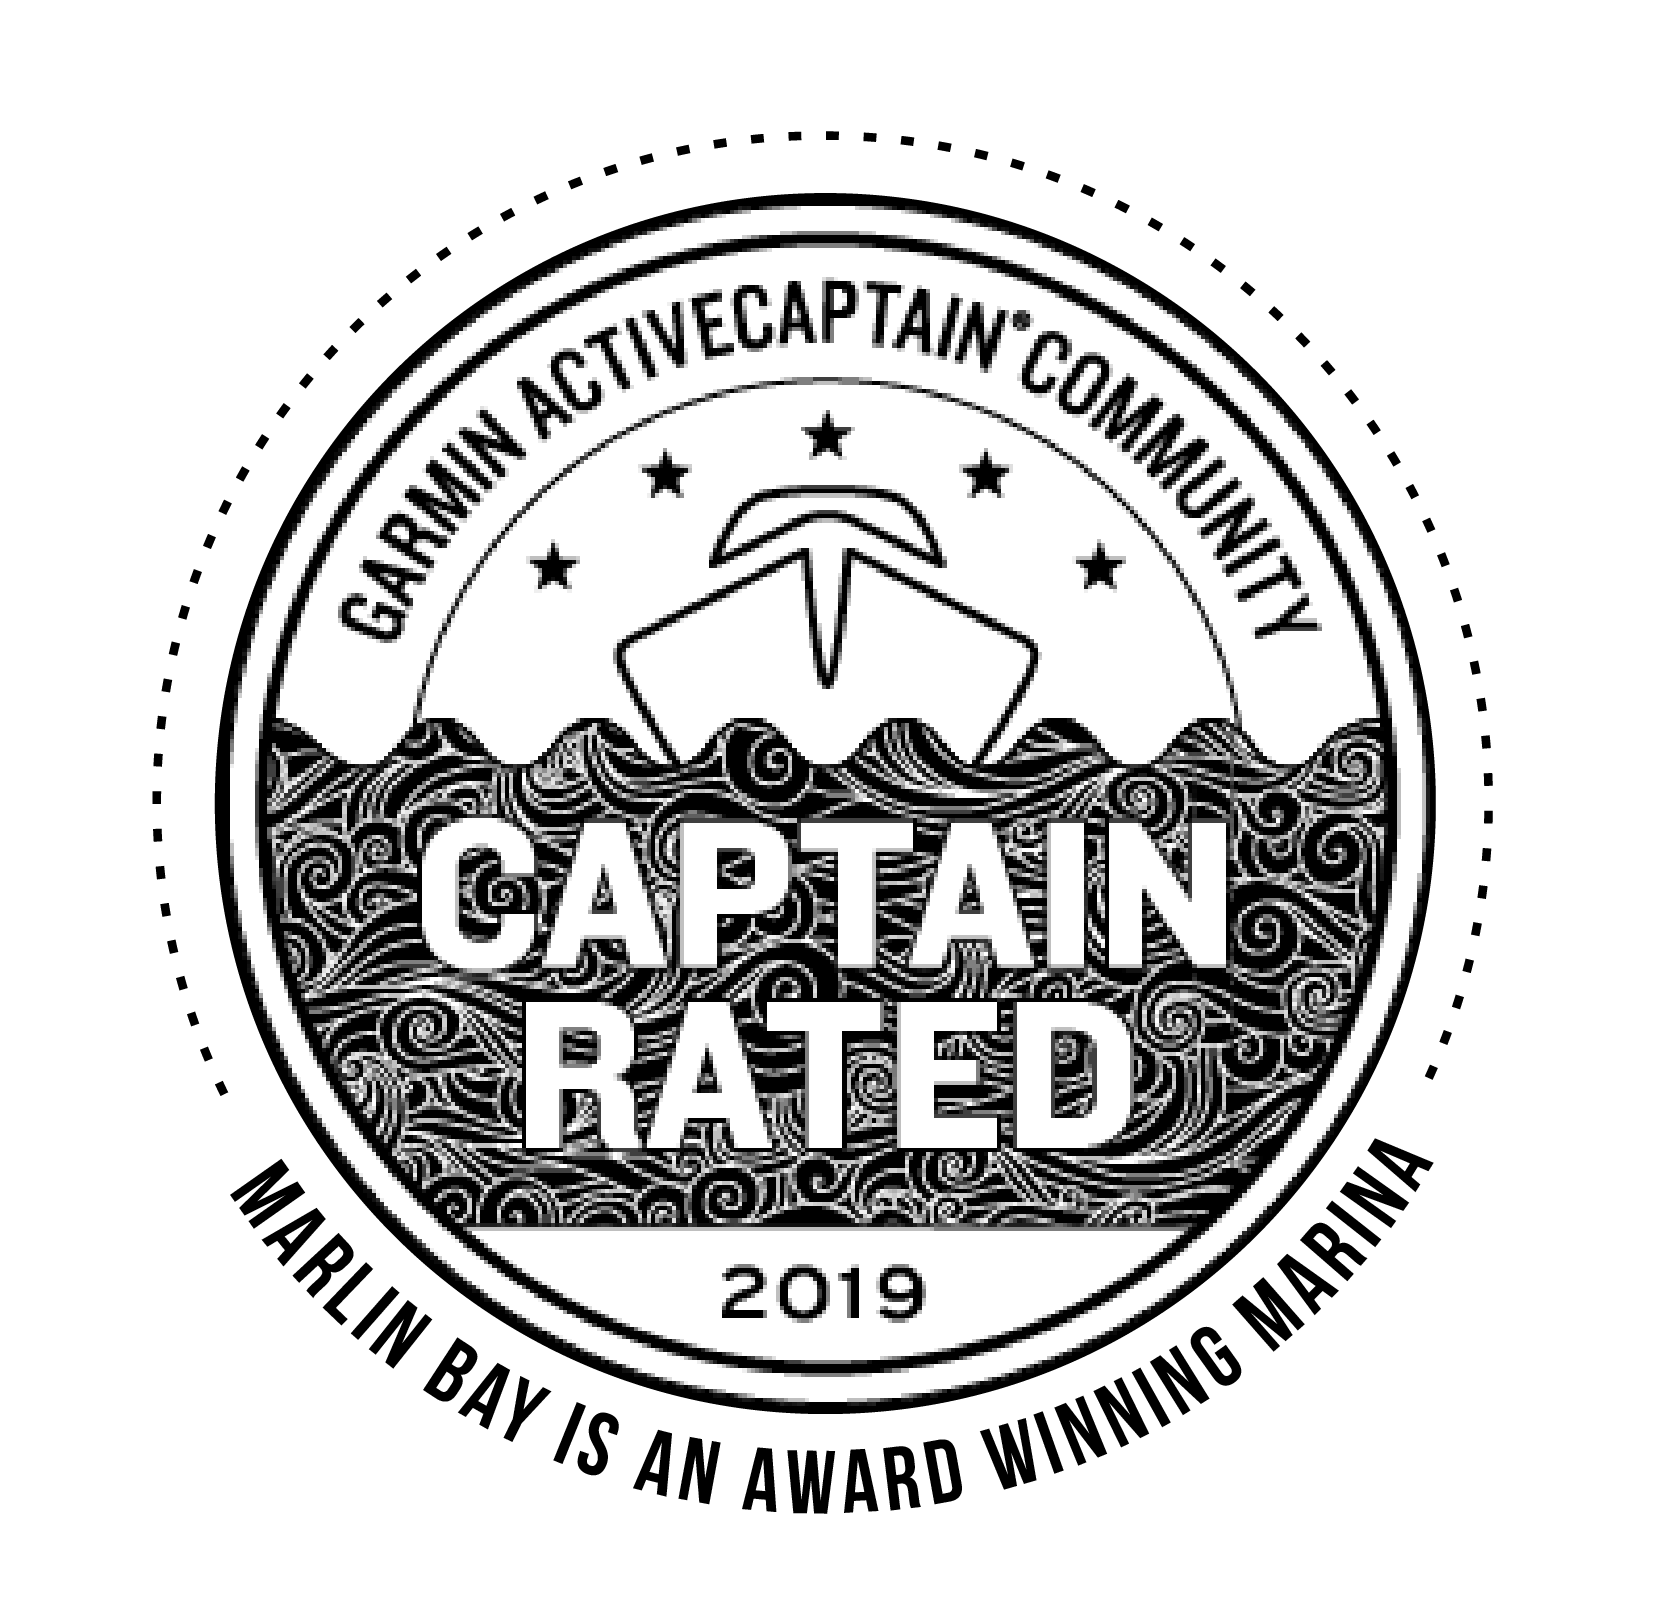 Garmin ActiveCaptin Community 2019 Captain Rated 2019. Marlin Bay Is An Award Winning Marina